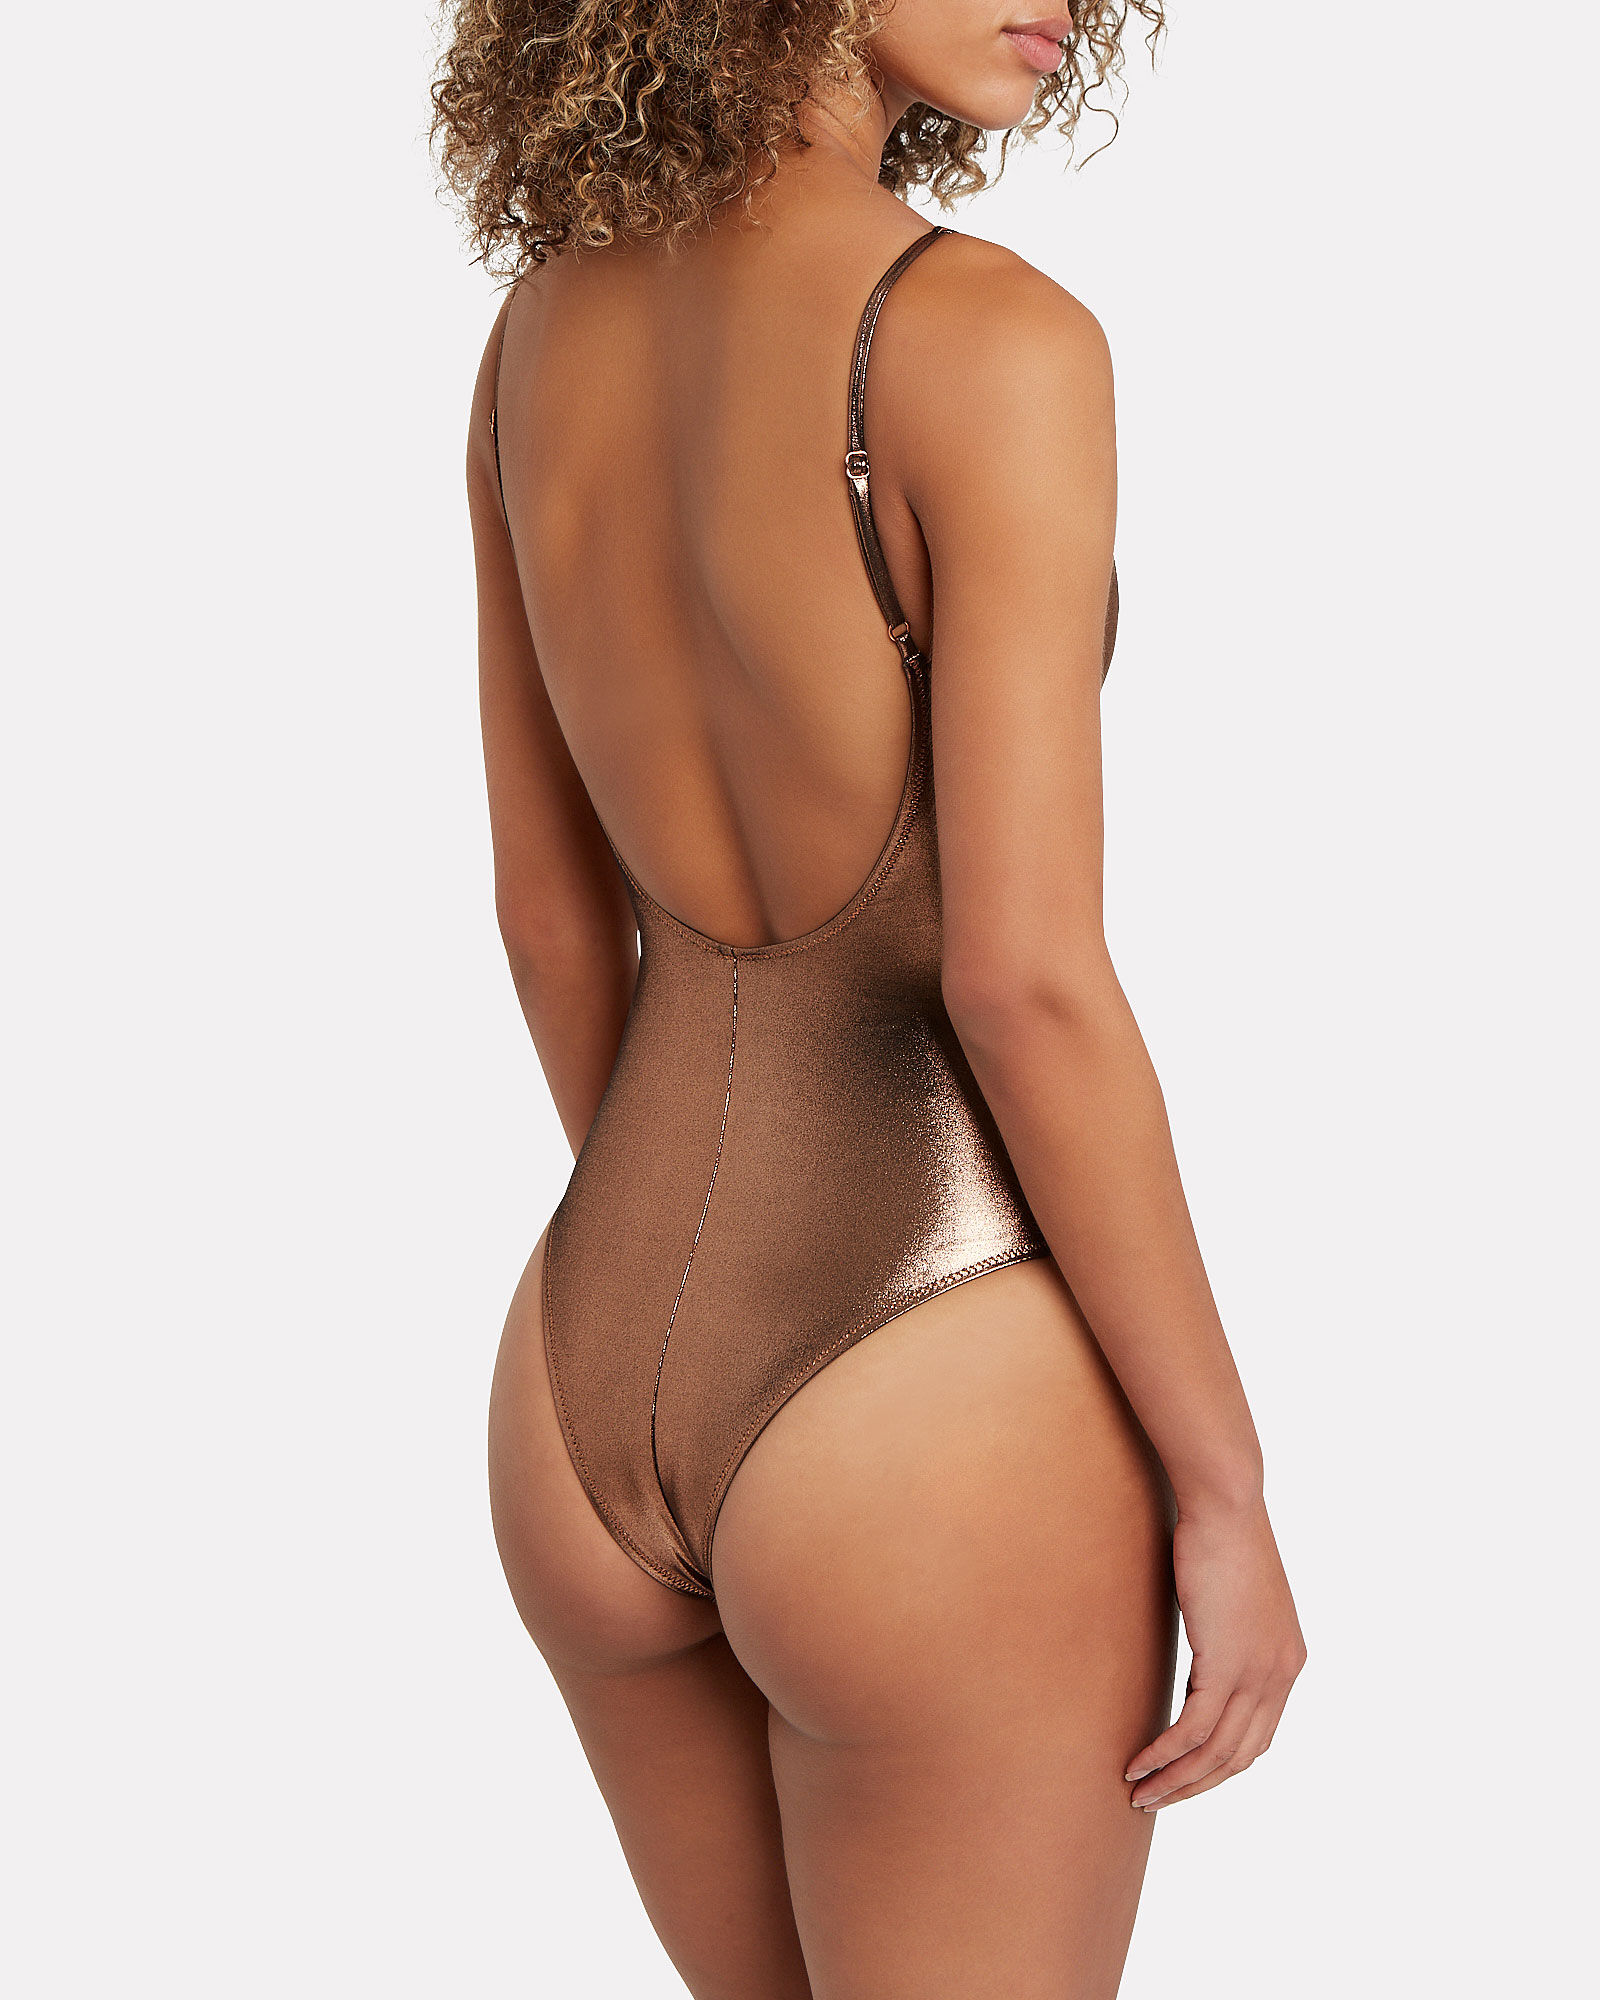 Viva One-Piece Swimsuit, GOLD, hi-res